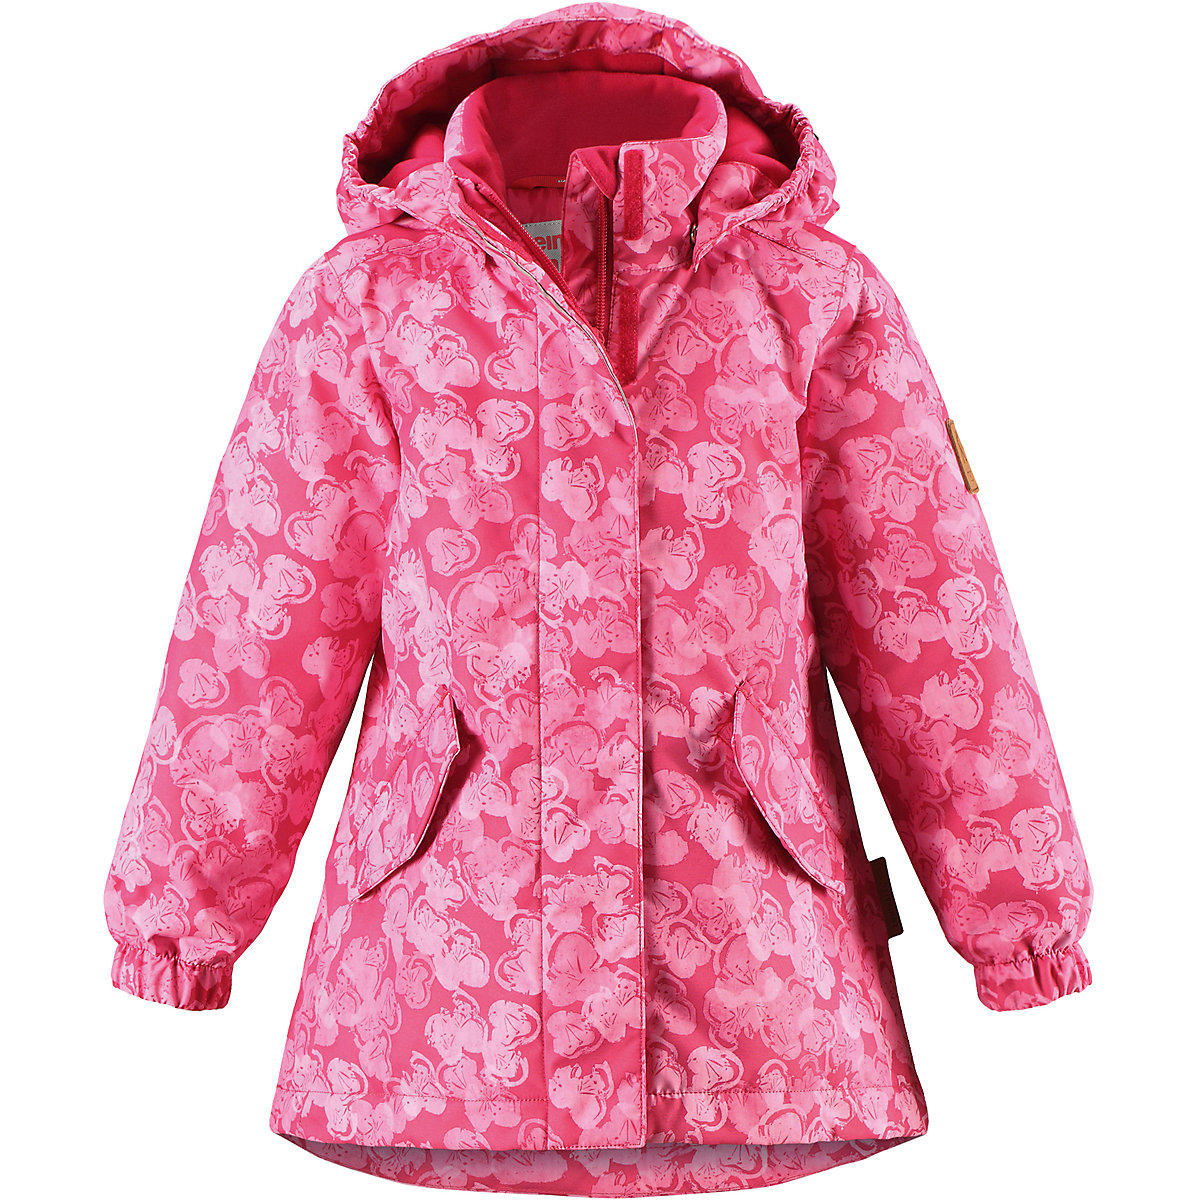 REIMA Jackets 8688782 for girls polyester winter  fur clothes girl 2016 new style popular 18 inch american girl doll pajamas clothes dress for christmas gift abd 072